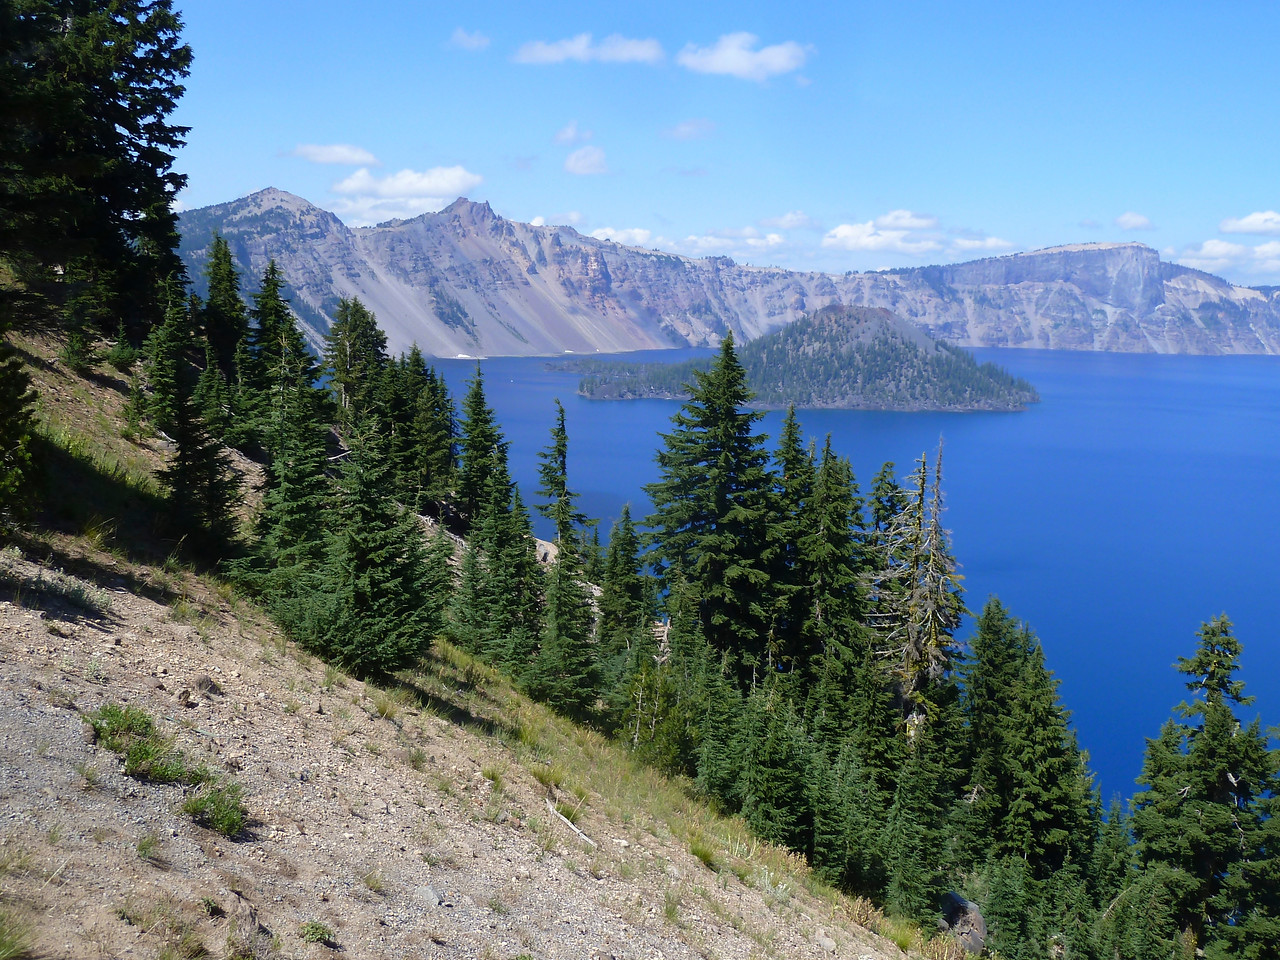 Awesome Crater Lake National Park!!